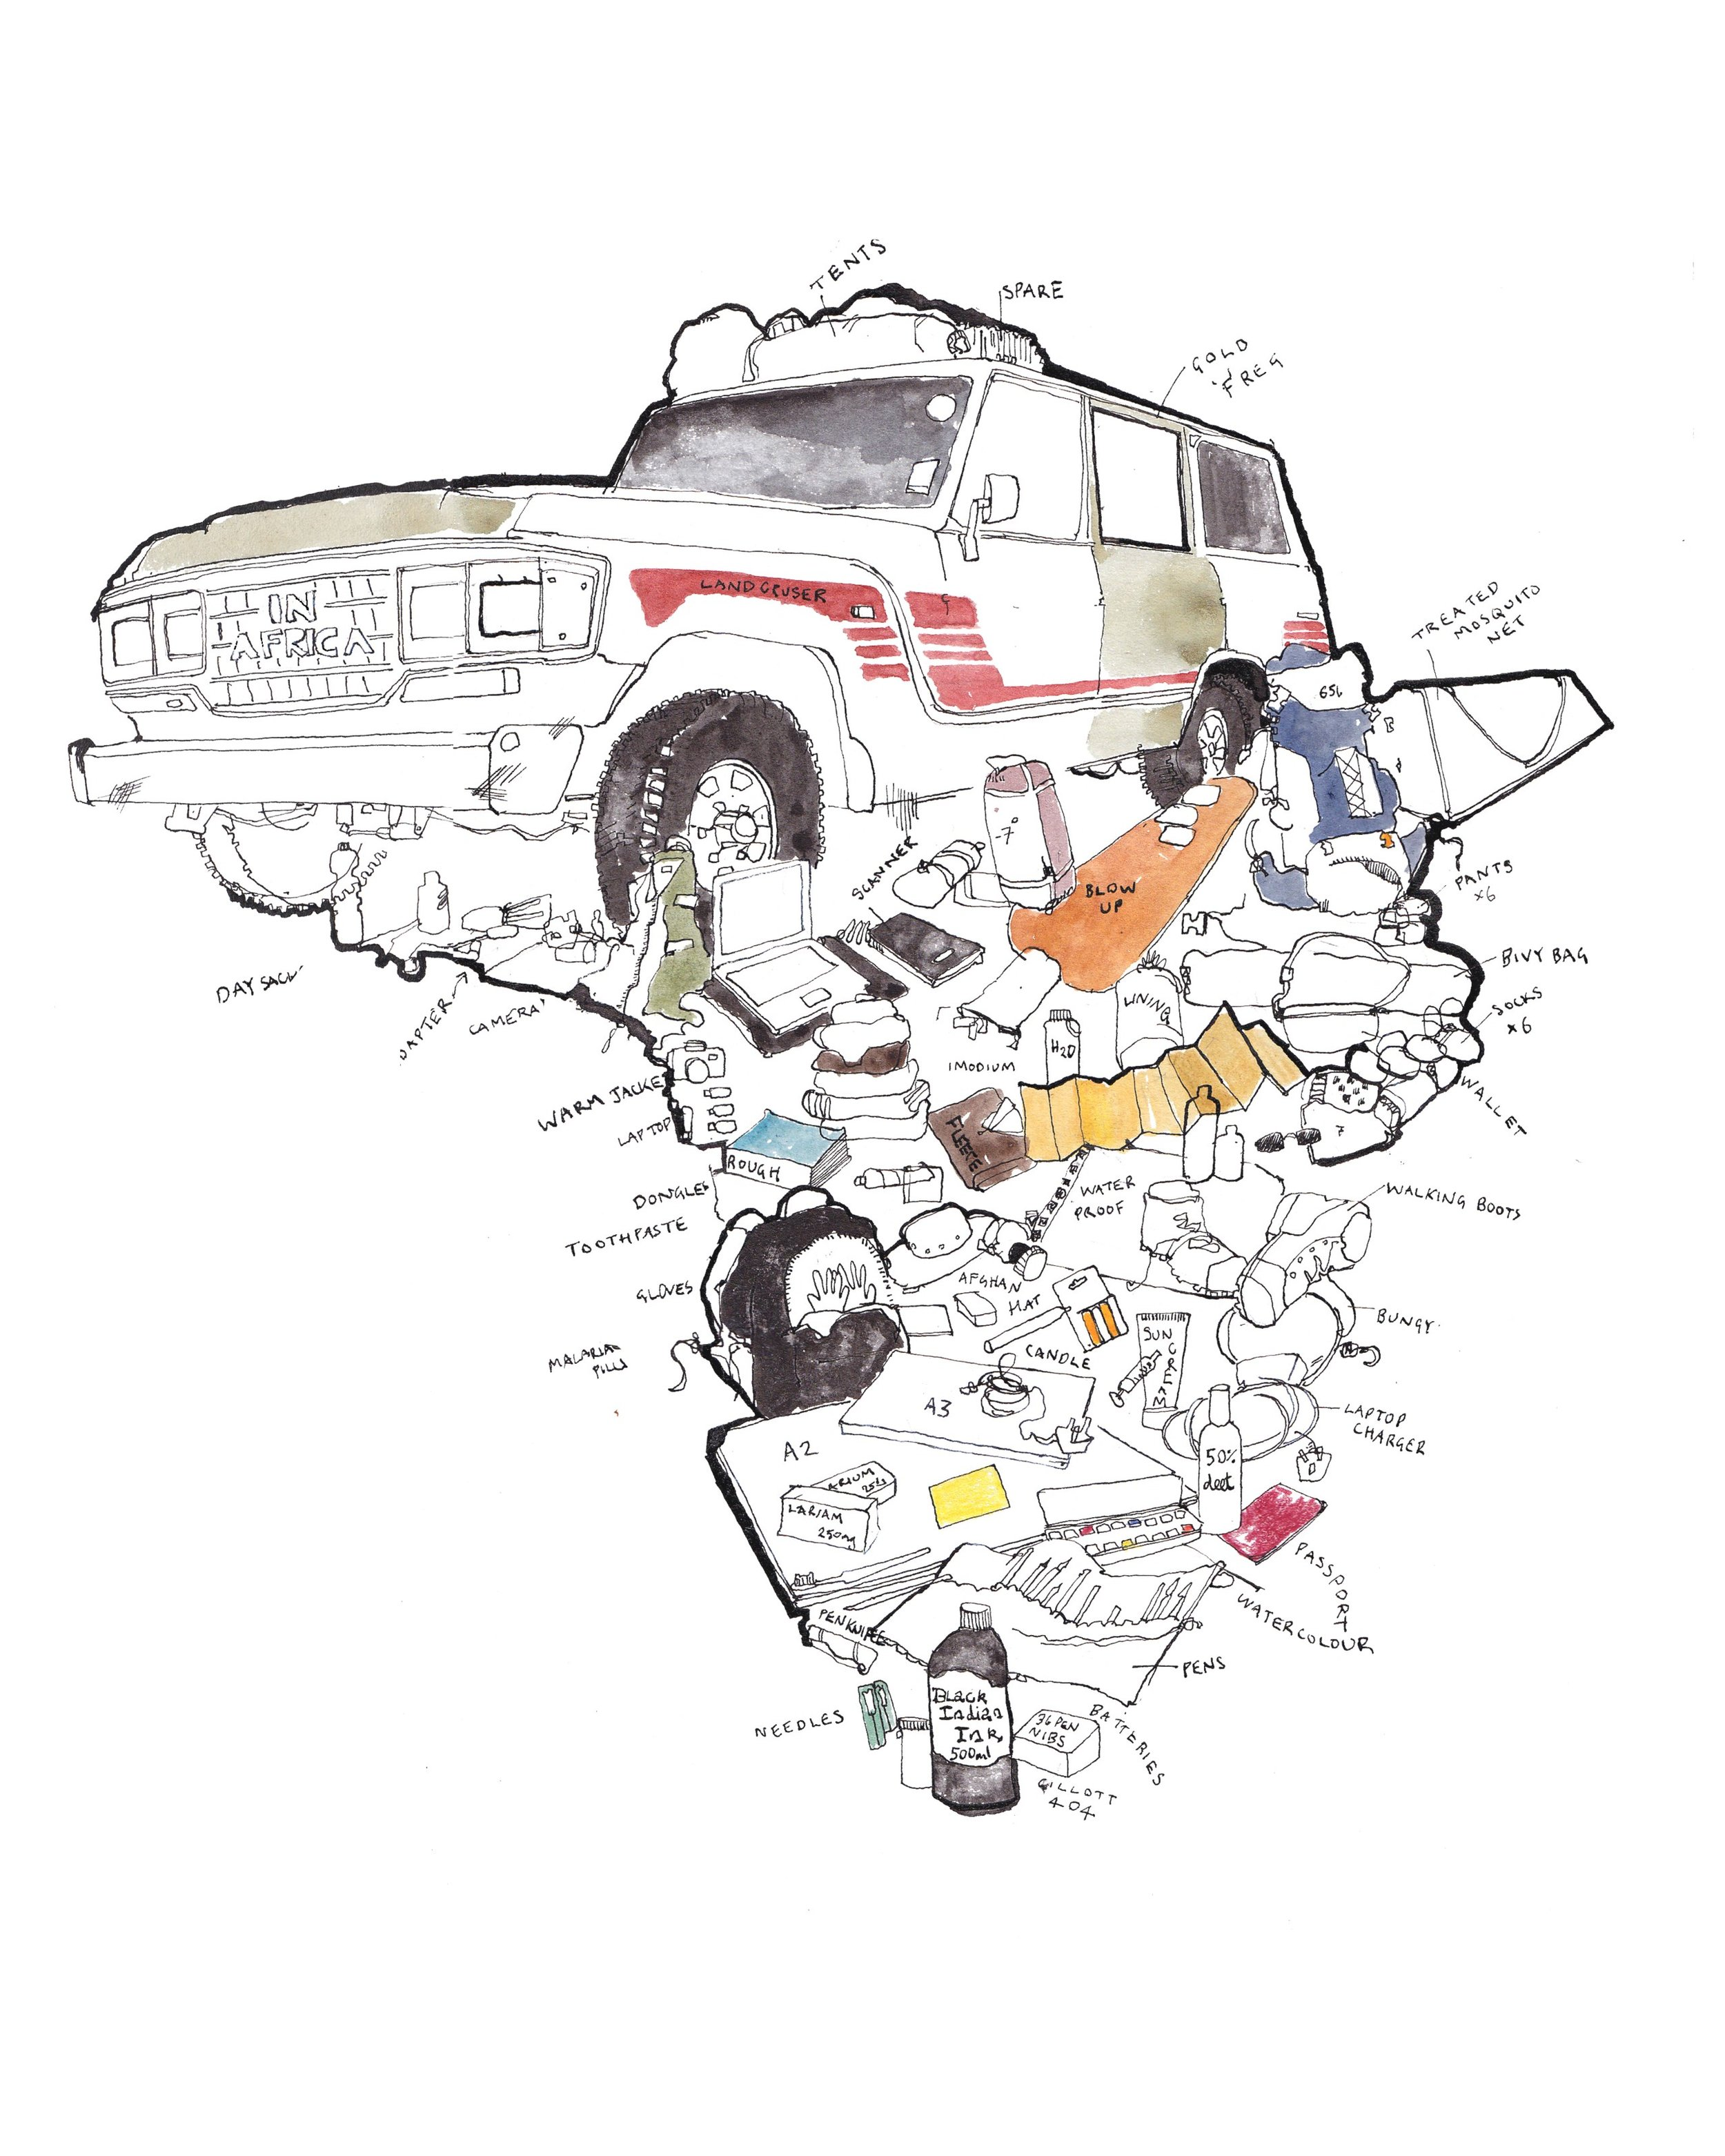 george-butler-drawing-car-and-contents.jpg